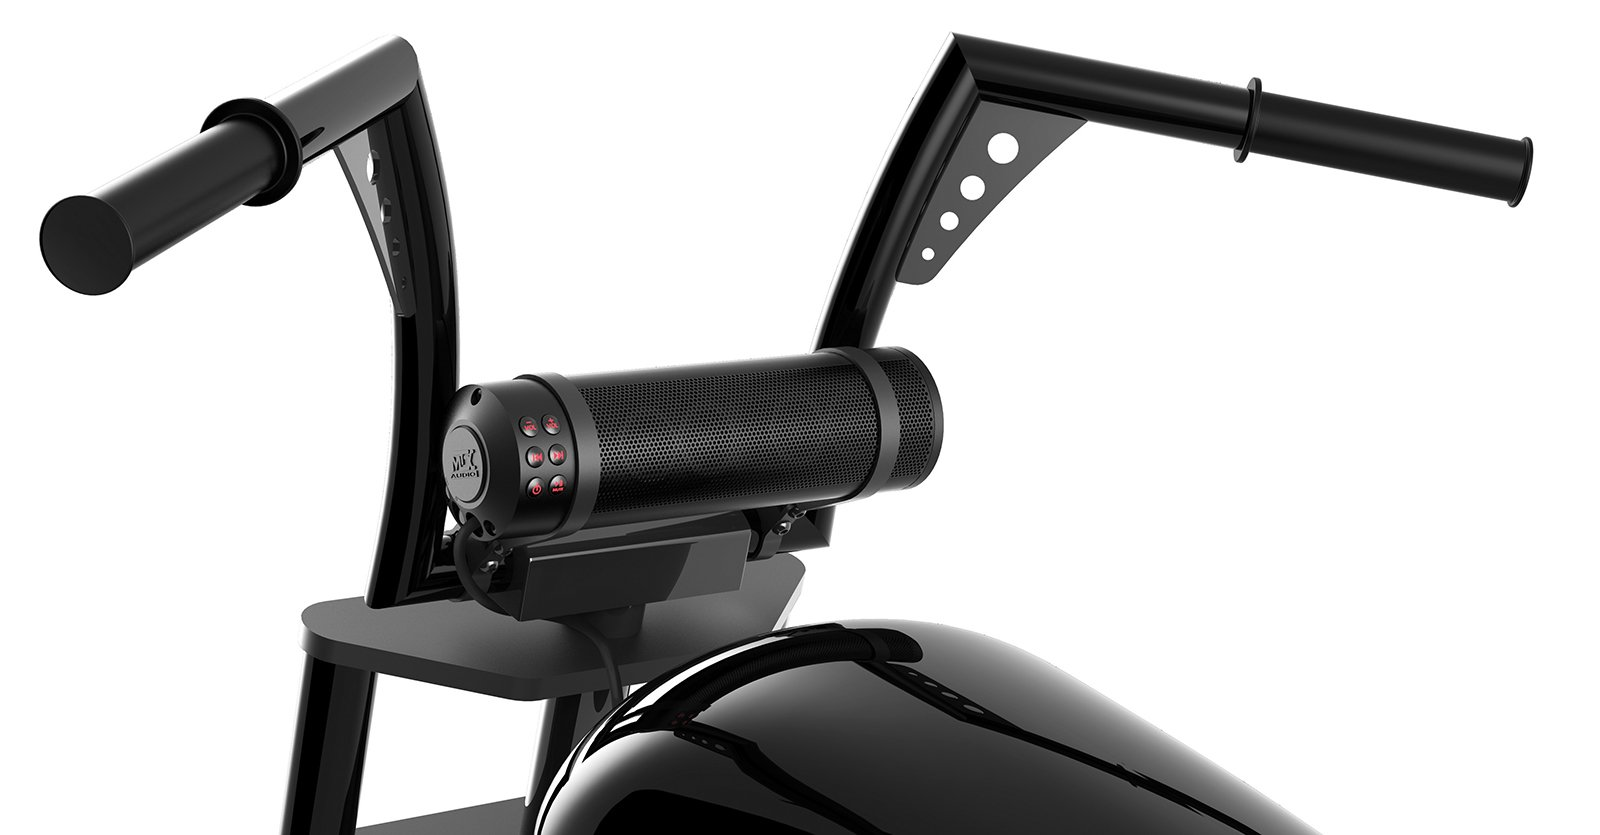 MTX MUDHSB-B Universal 6 Speaker All Weather Handlebar Sound System by MTX (Image #1)